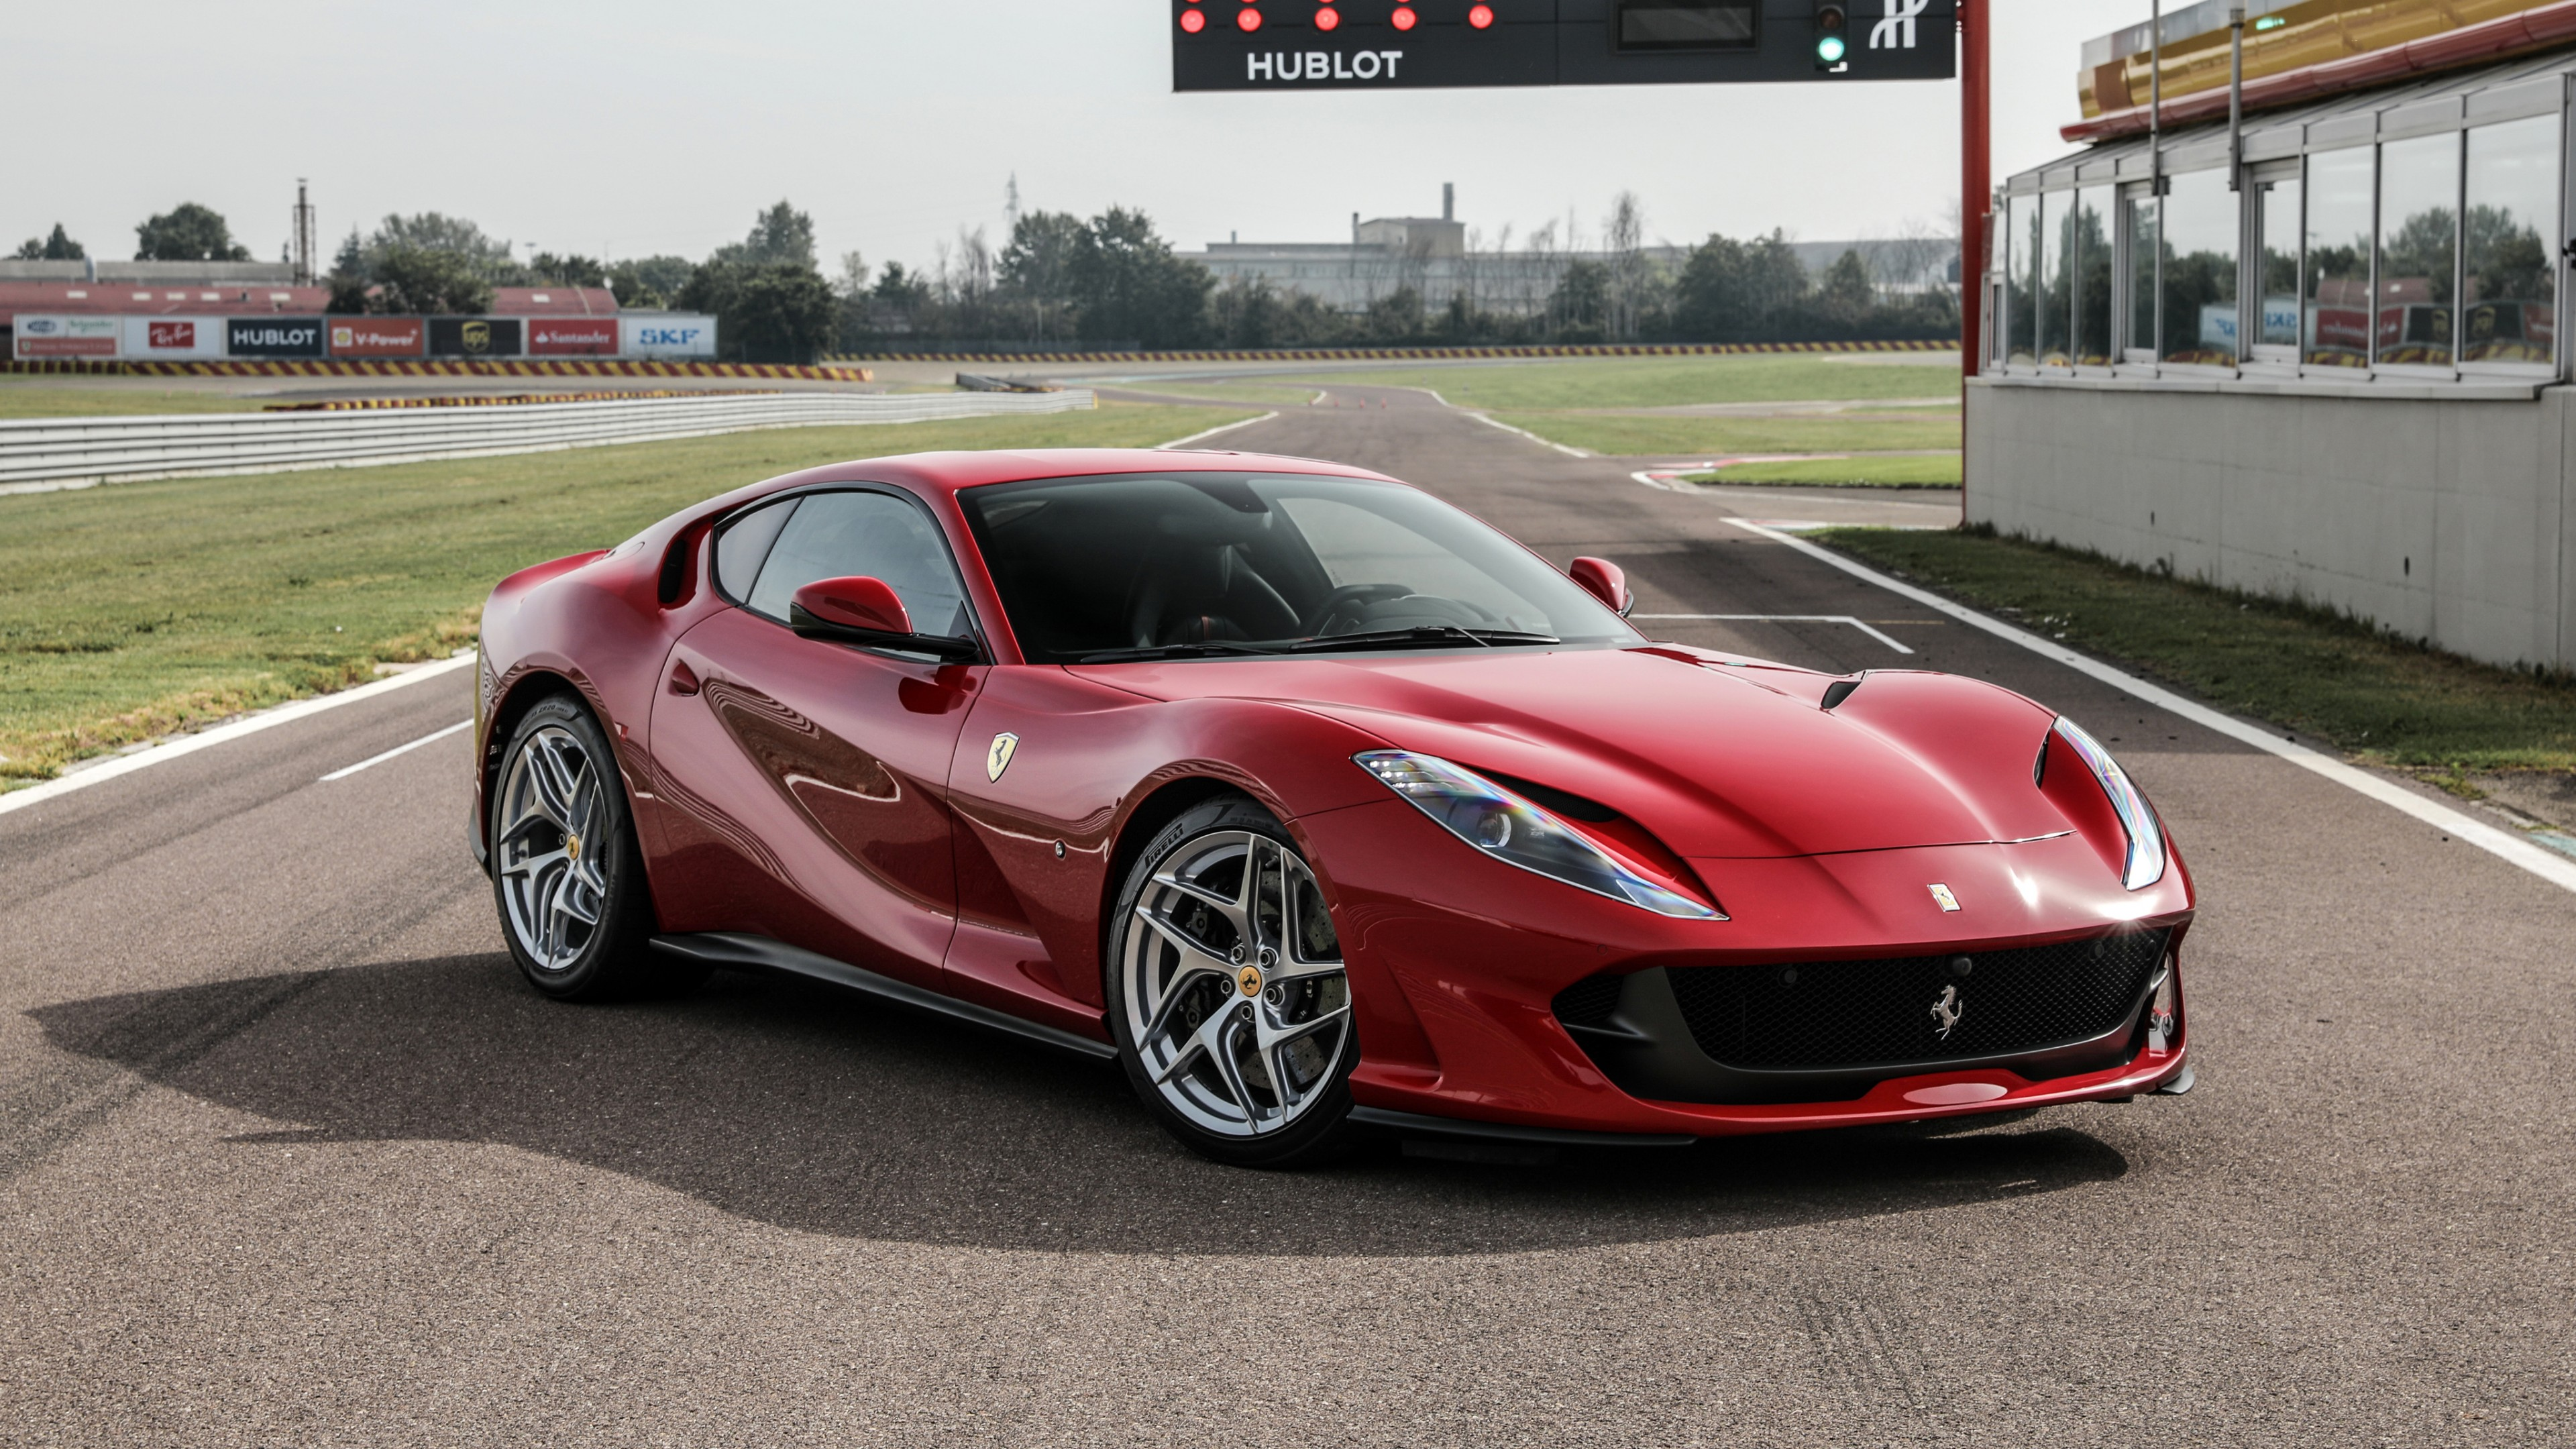 Ferrari 812 Superfast 2017 4K Wallpaper HD Car